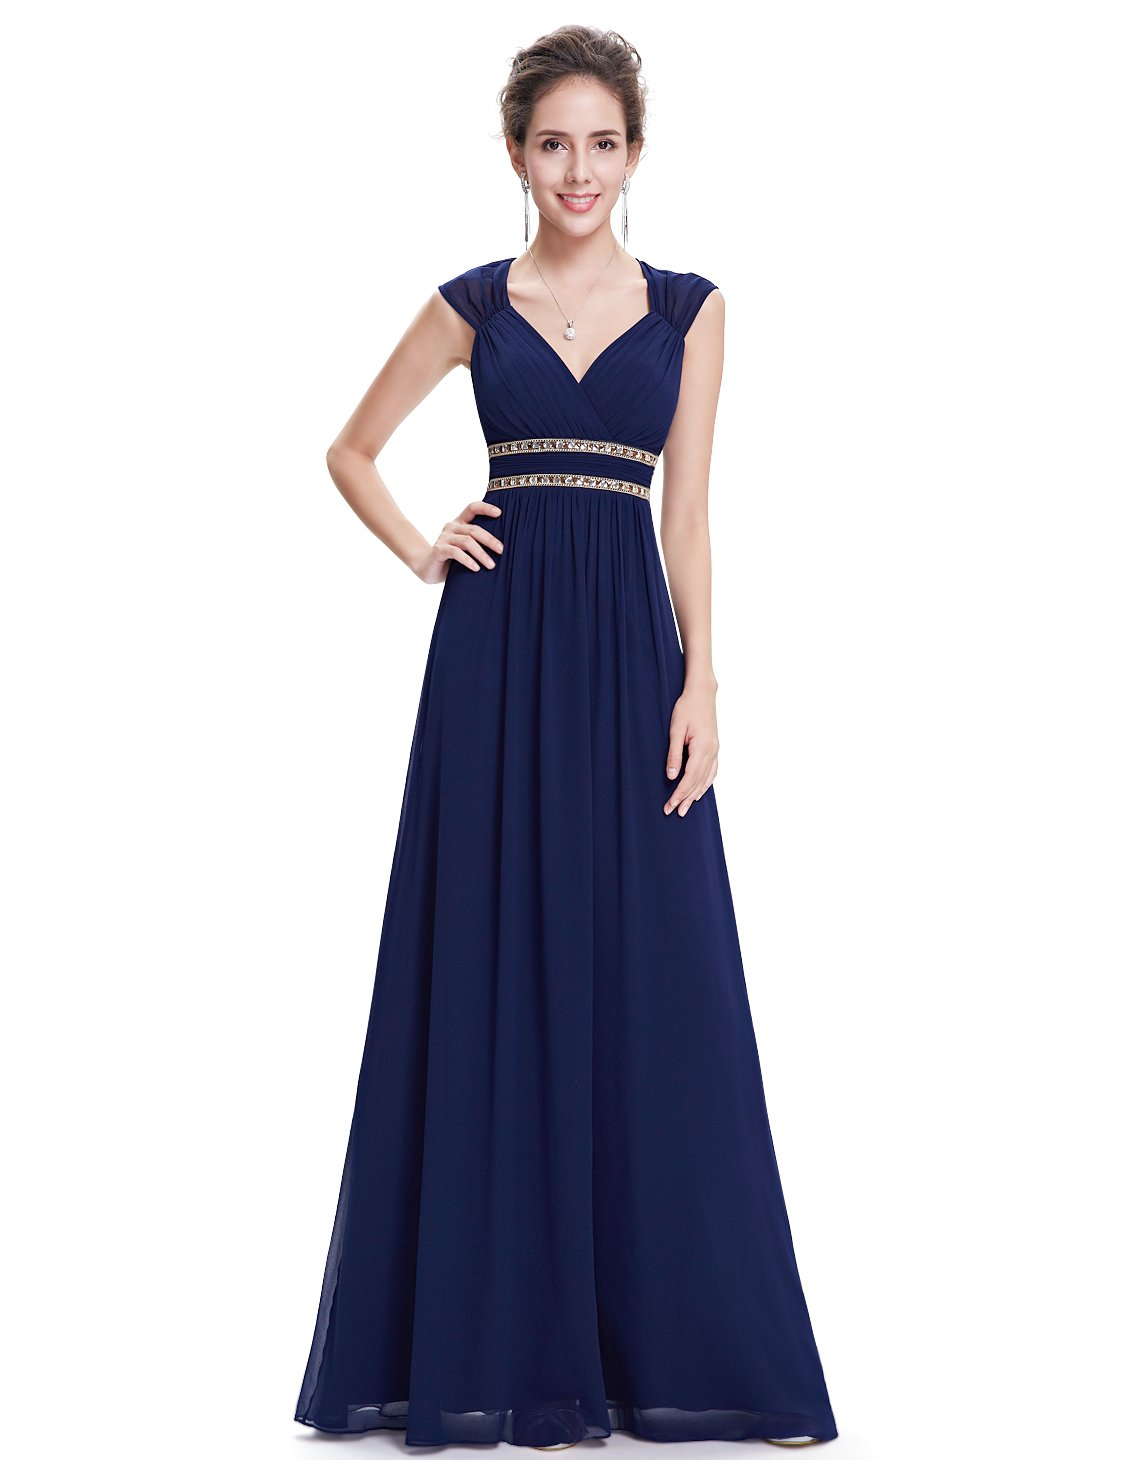 Ever-Pretty Womens Floor Length Beaded Grecian Style Military Ball Dress 6 US Navy Blue by Ever-Pretty (Image #4)